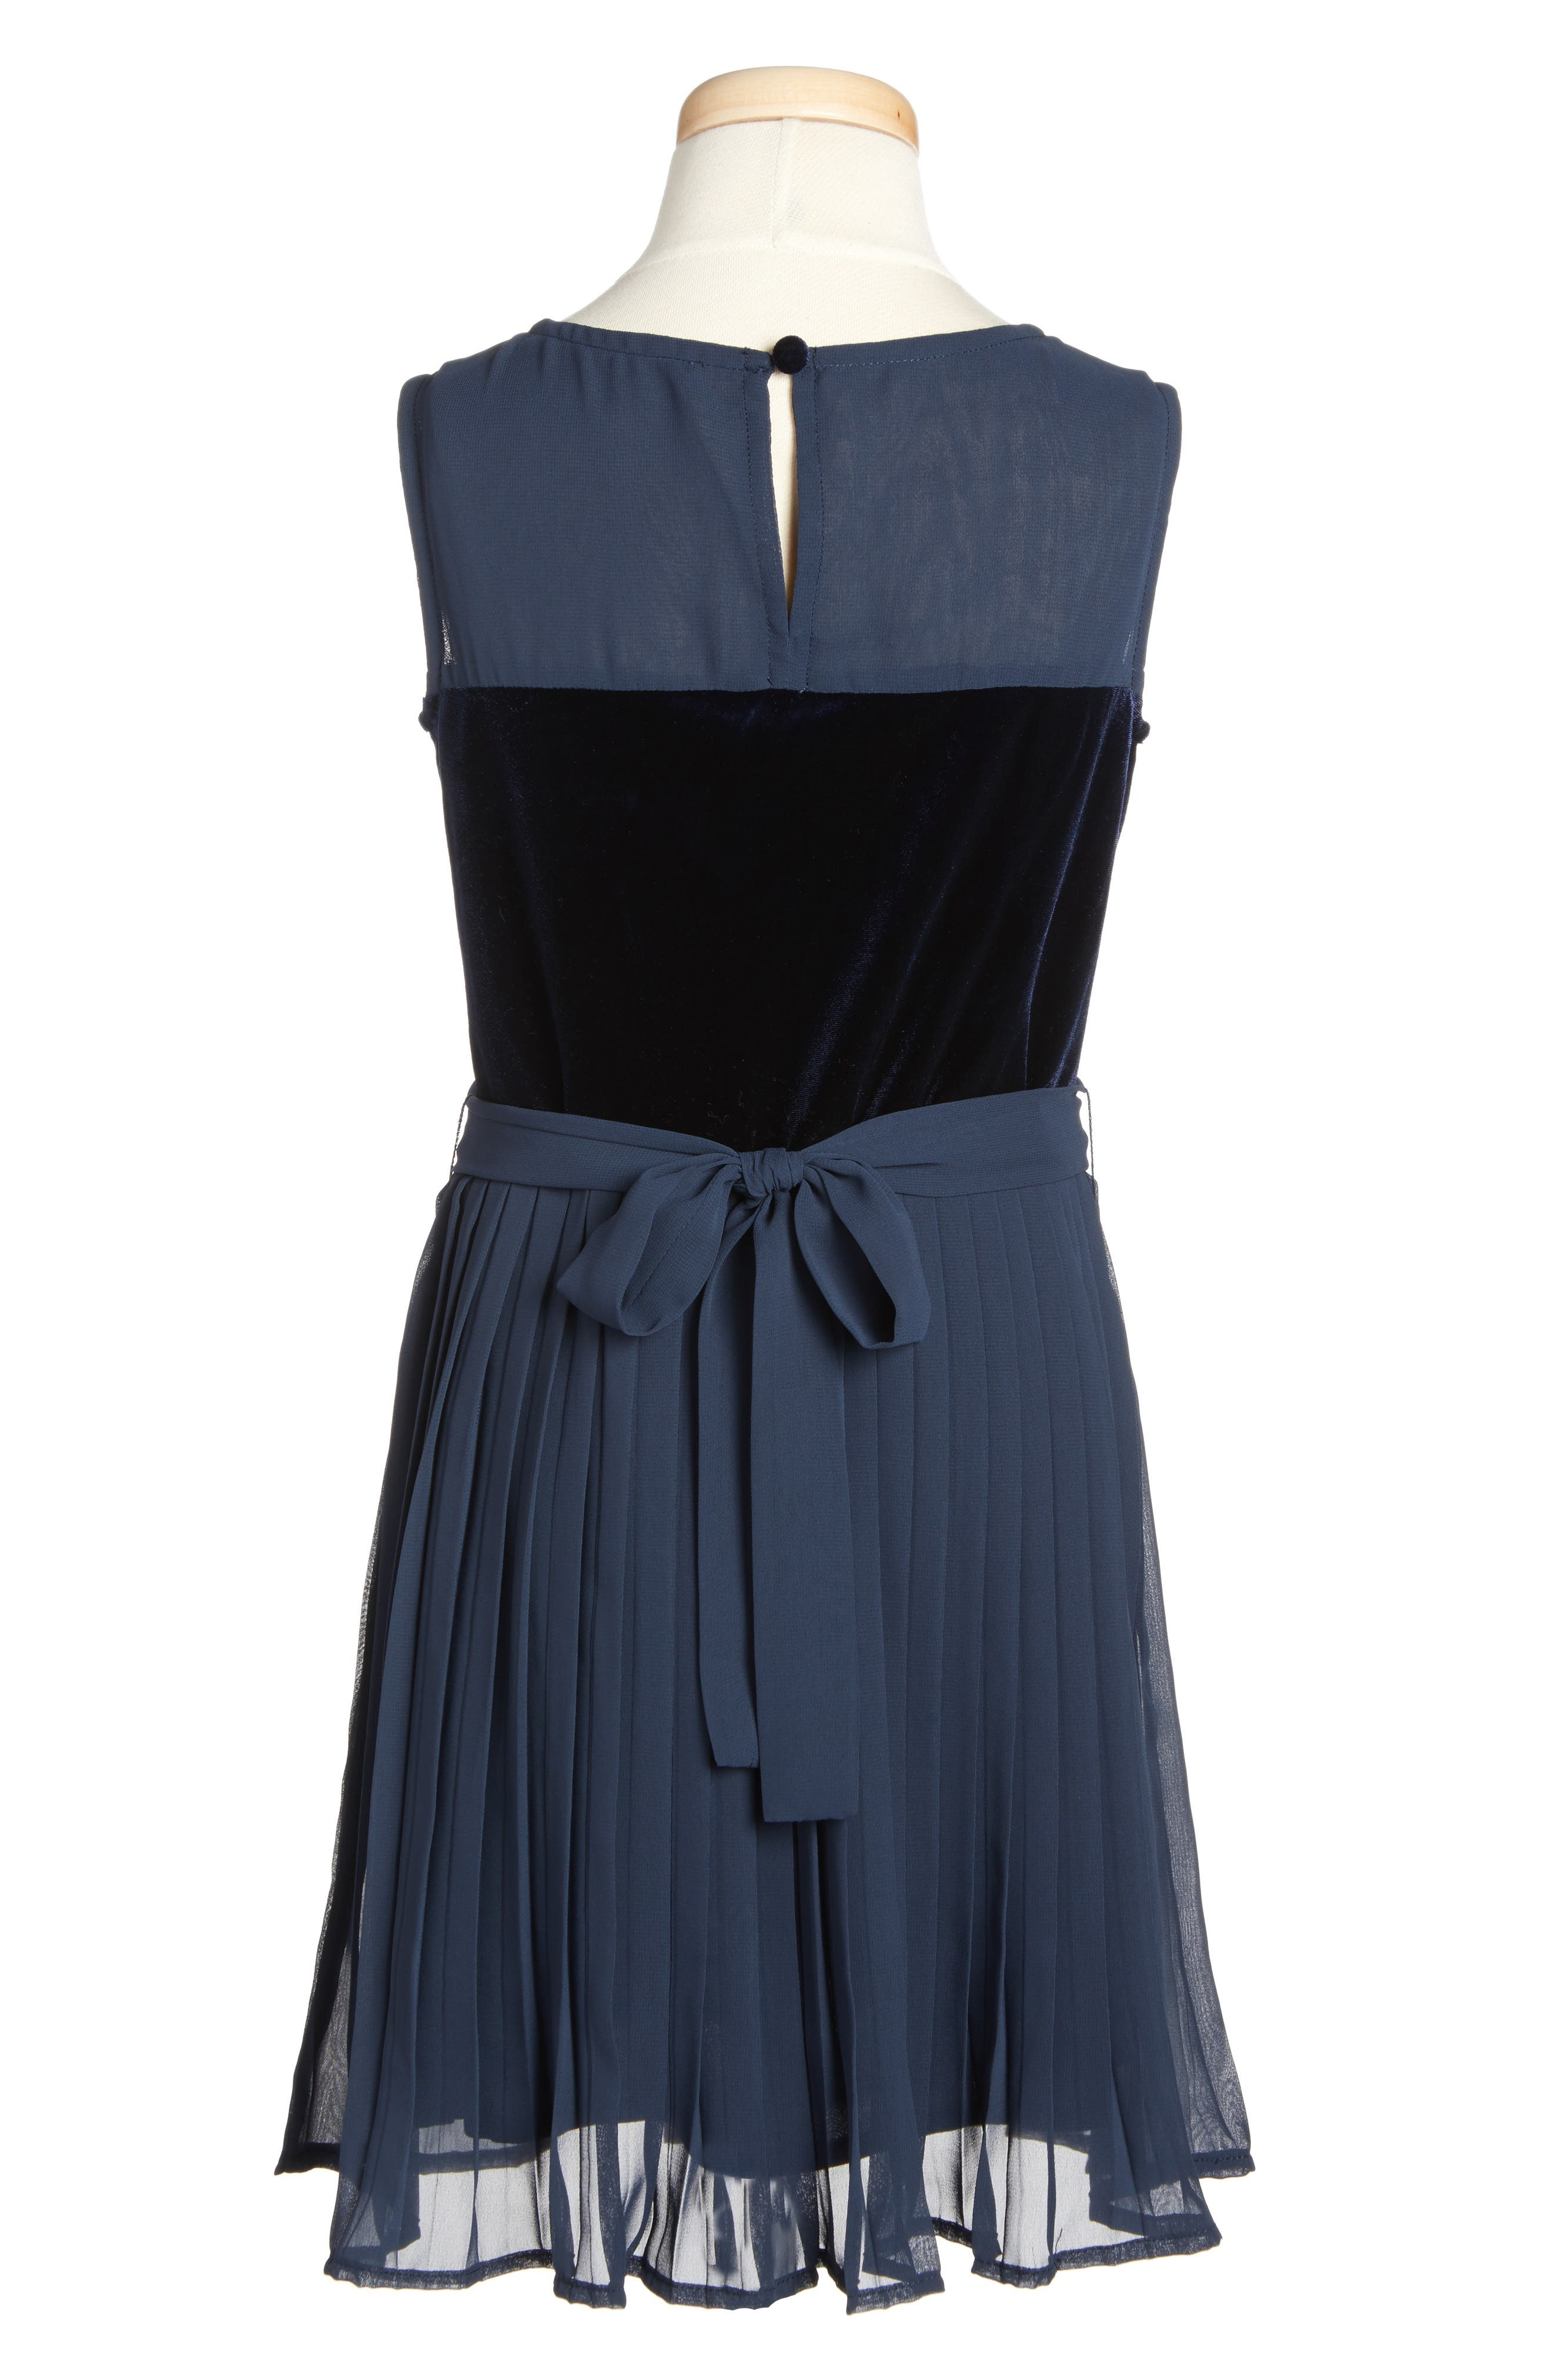 Sleeveless Party Dress,                             Alternate thumbnail 2, color,                             Navy Blue